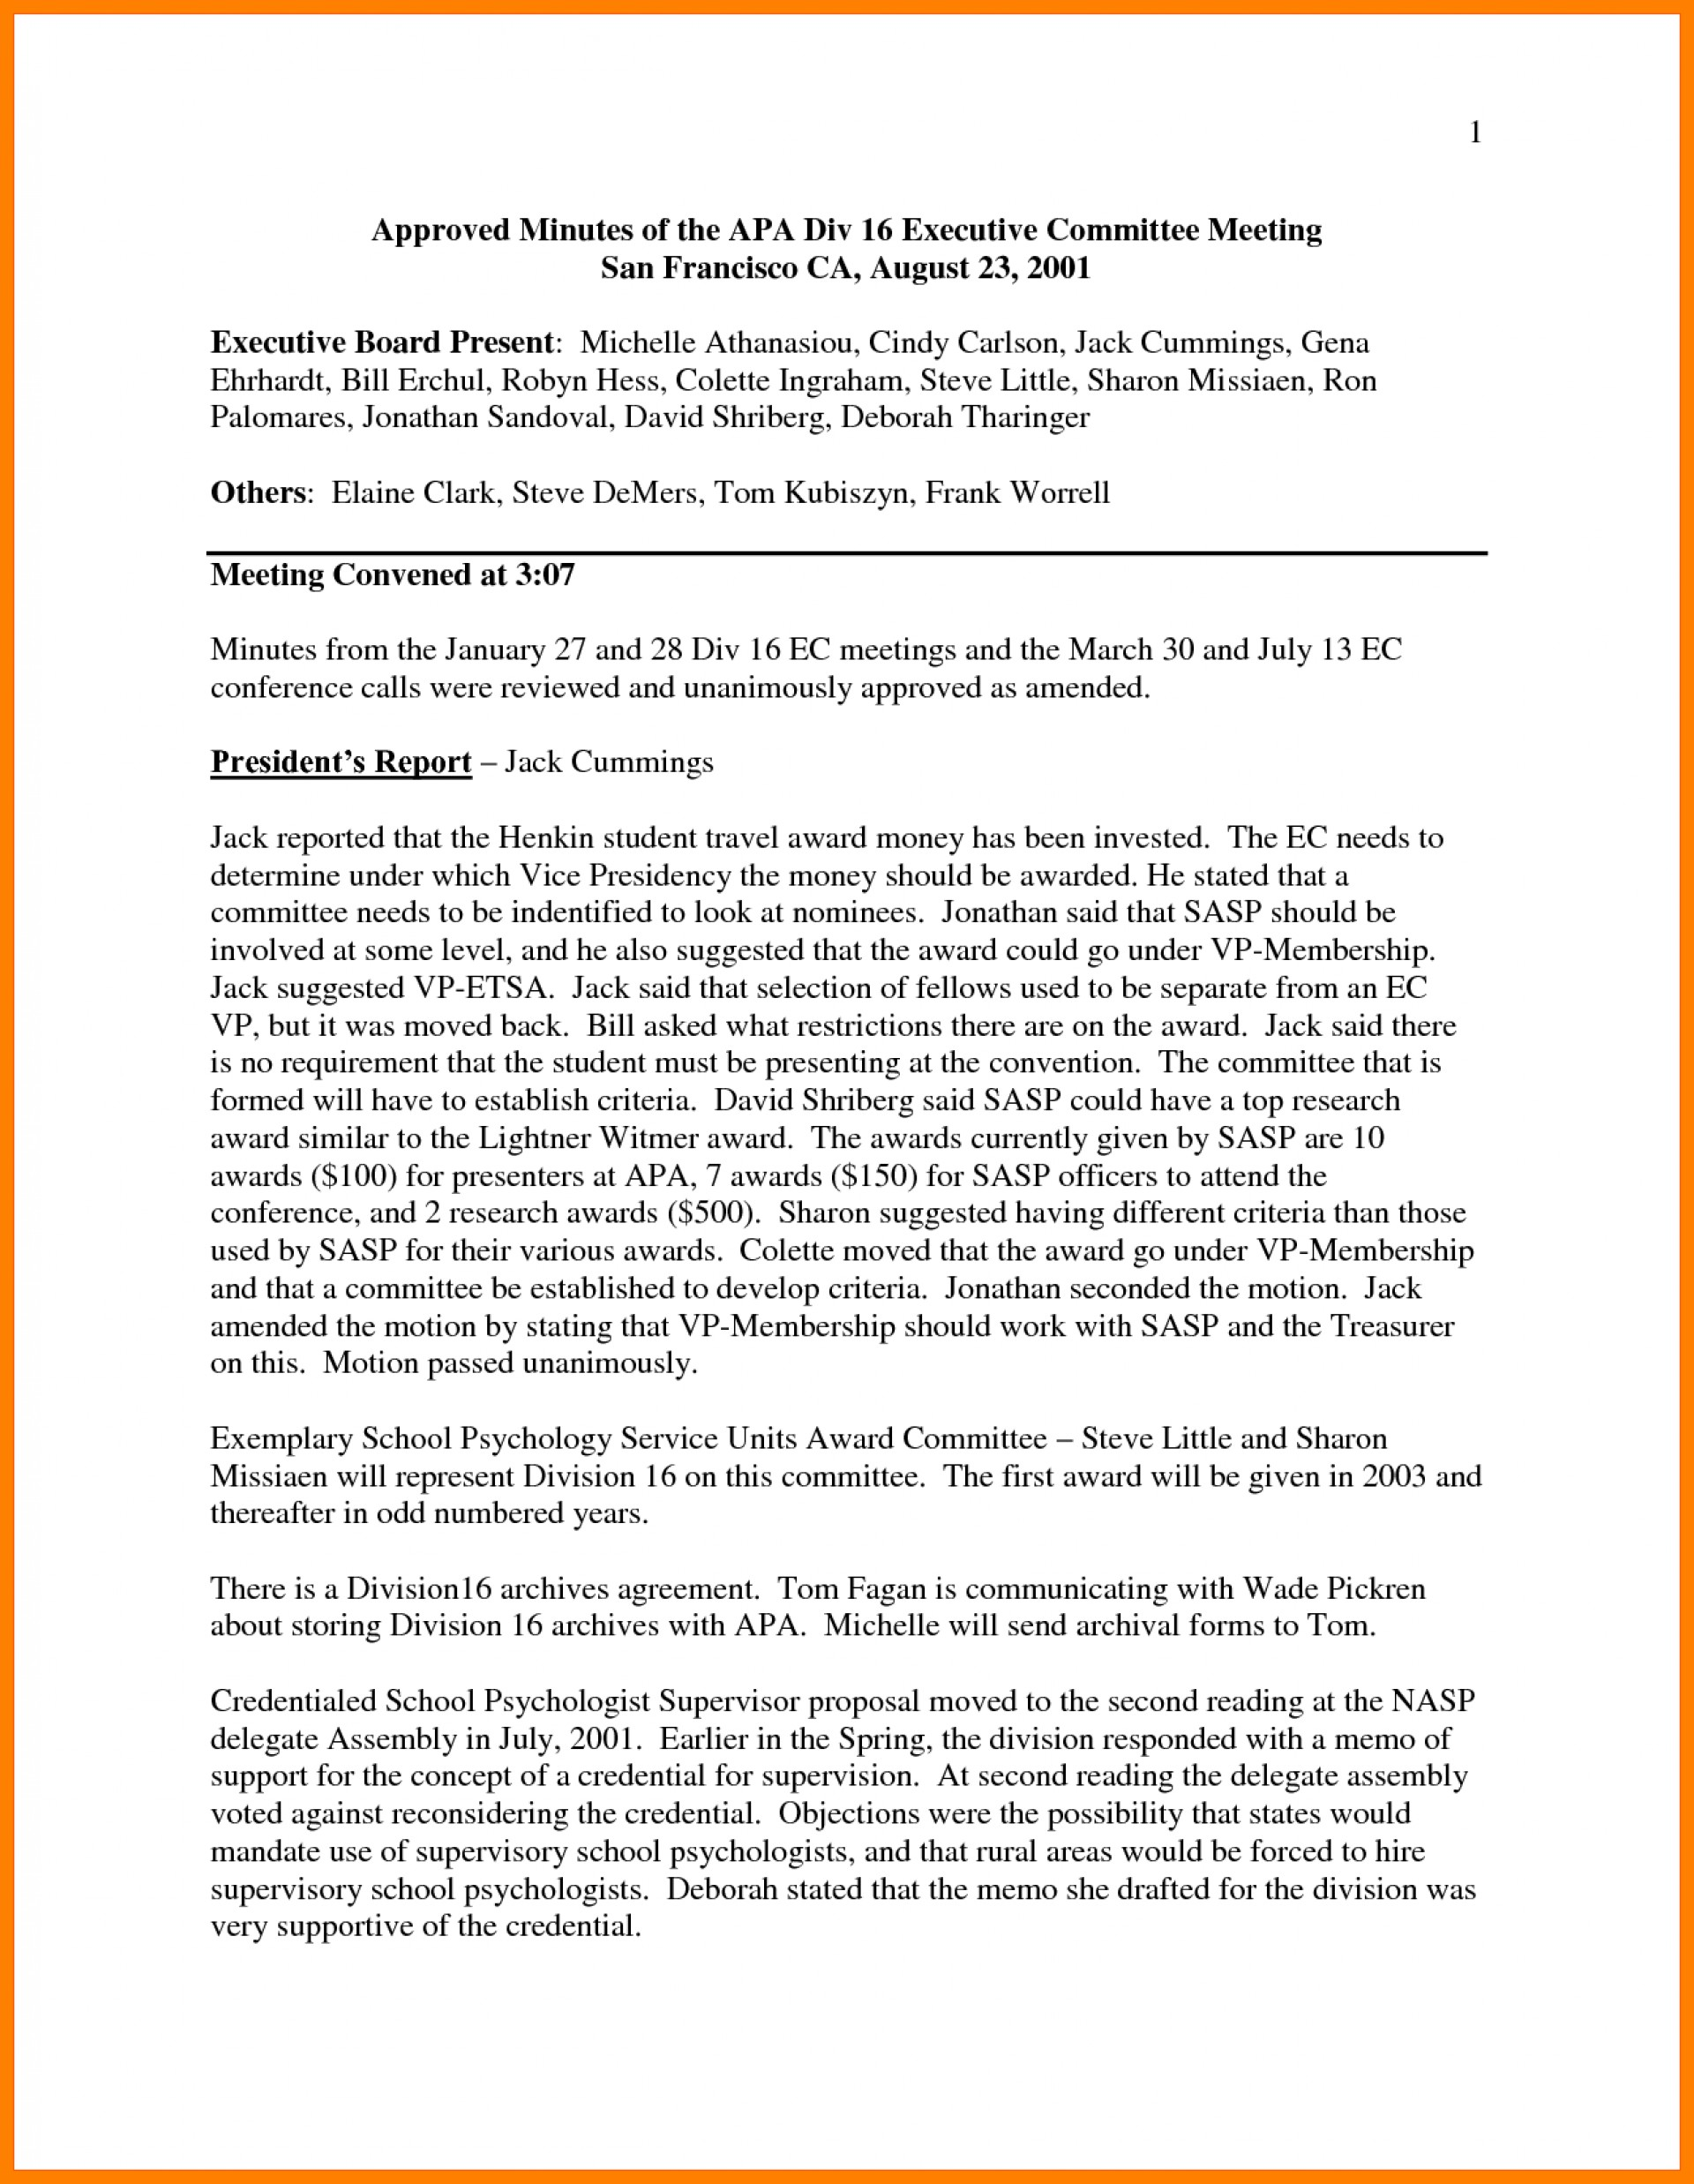 012 Research Paper Apa Style Format Memorandum Collection Of Solutions Memo Final Seee Owl Example Formatting With Guide Surprising Outline Template Reference Page 1920